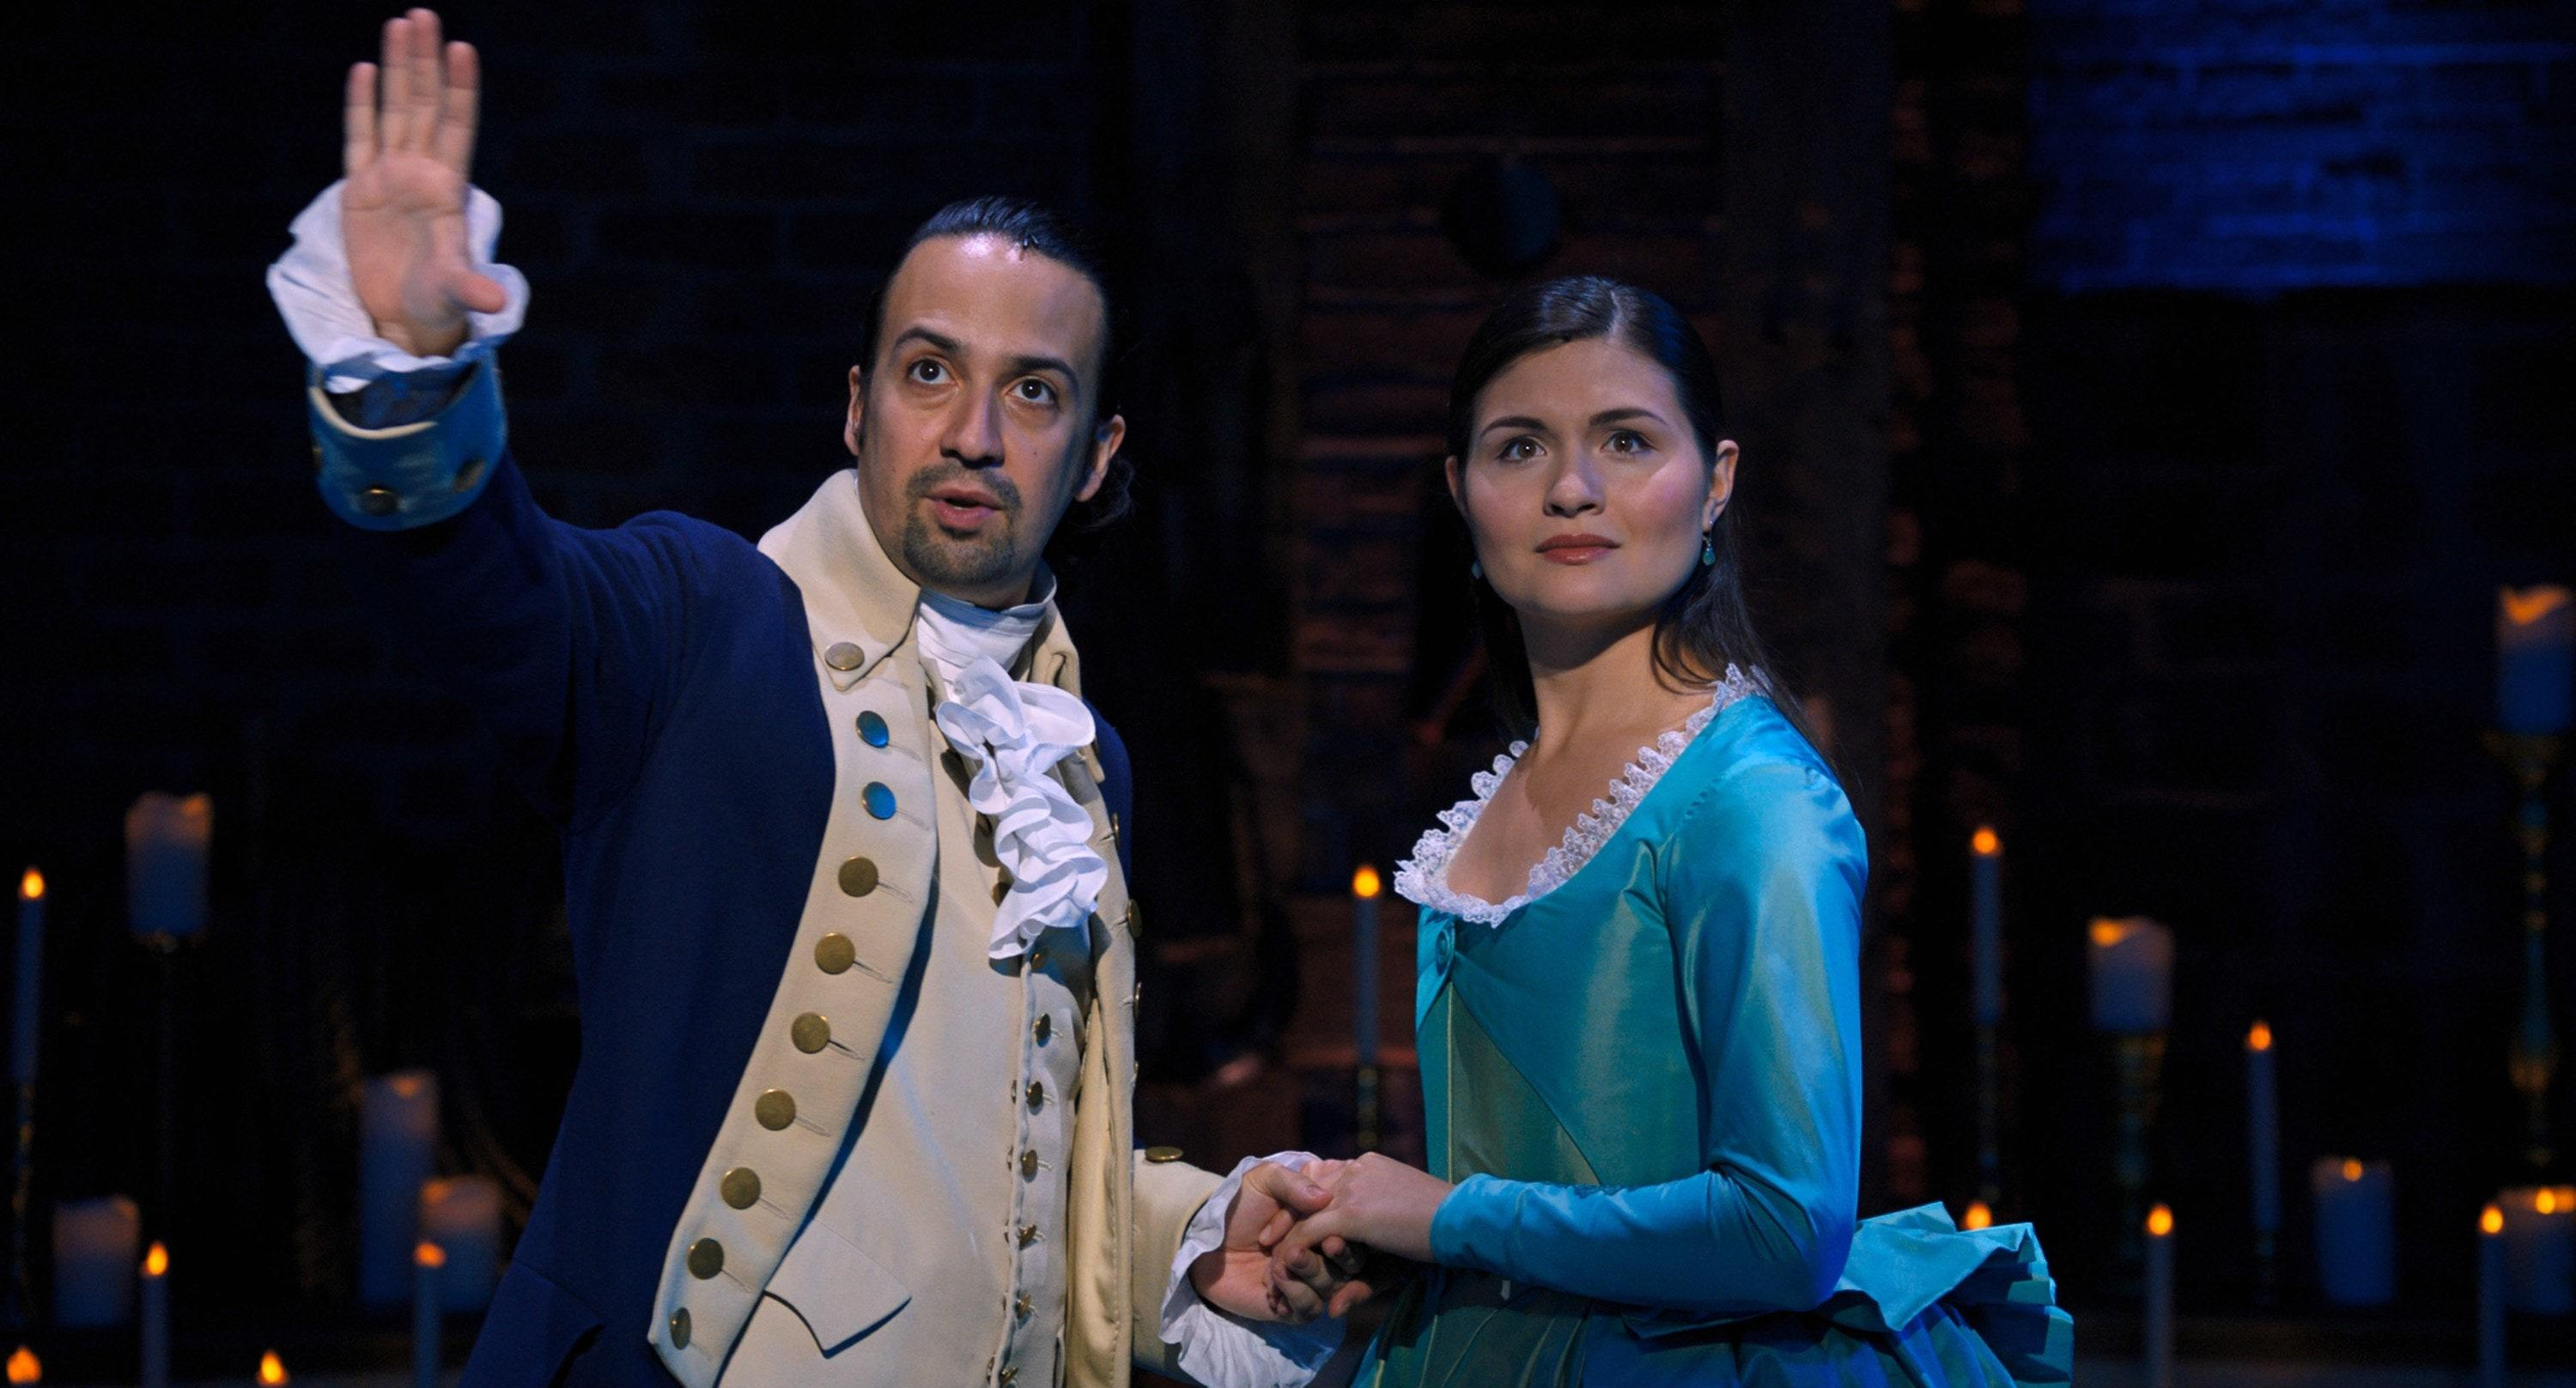 People Seeing Hamilton for the First Time Are Sharing Their Reactions on Twitter